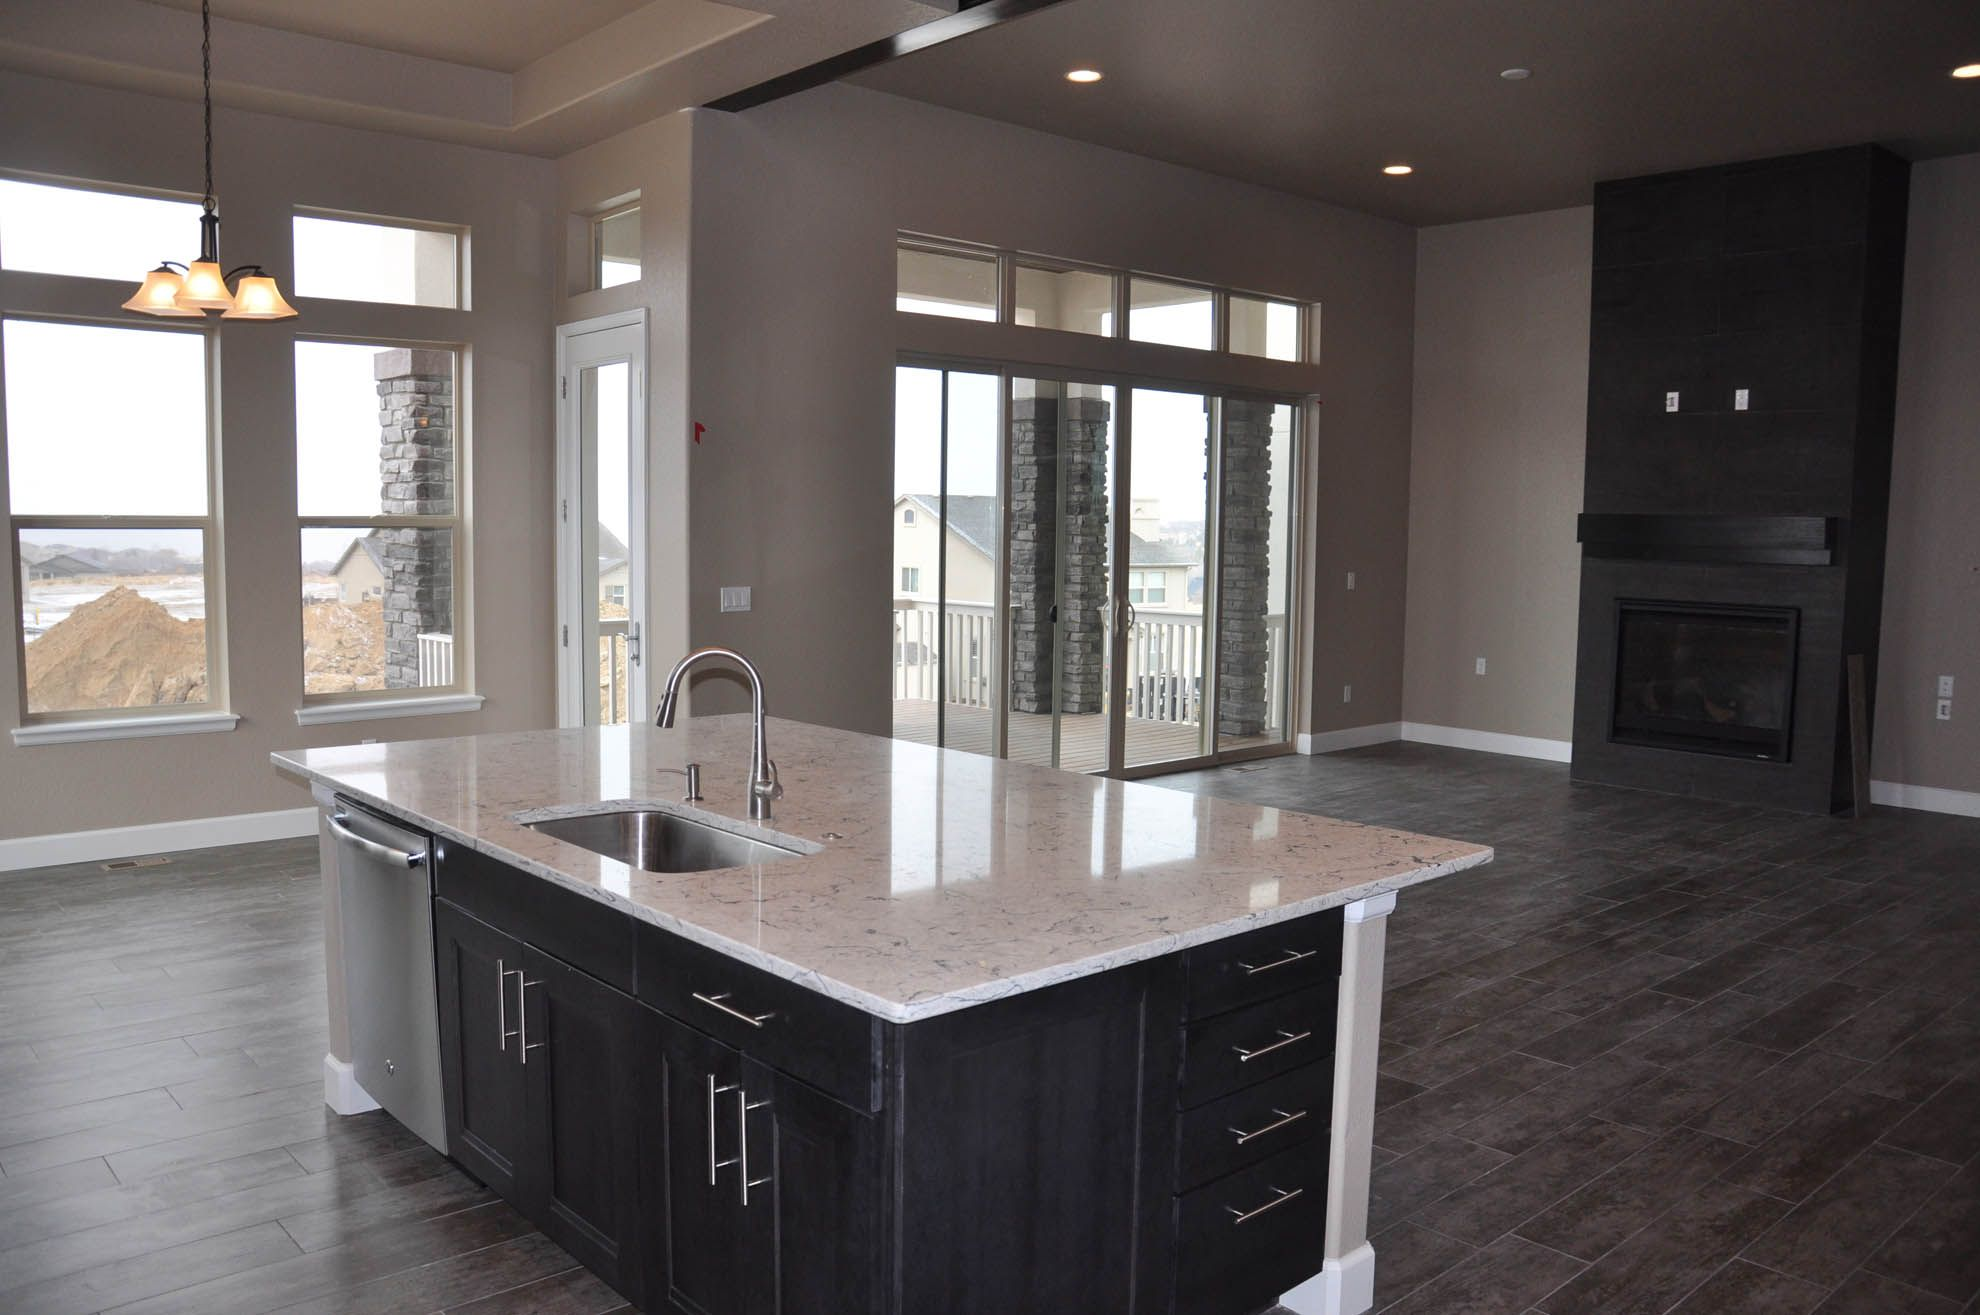 Kitchen featured in the Infinity By Classic Homes in Colorado Springs, CO